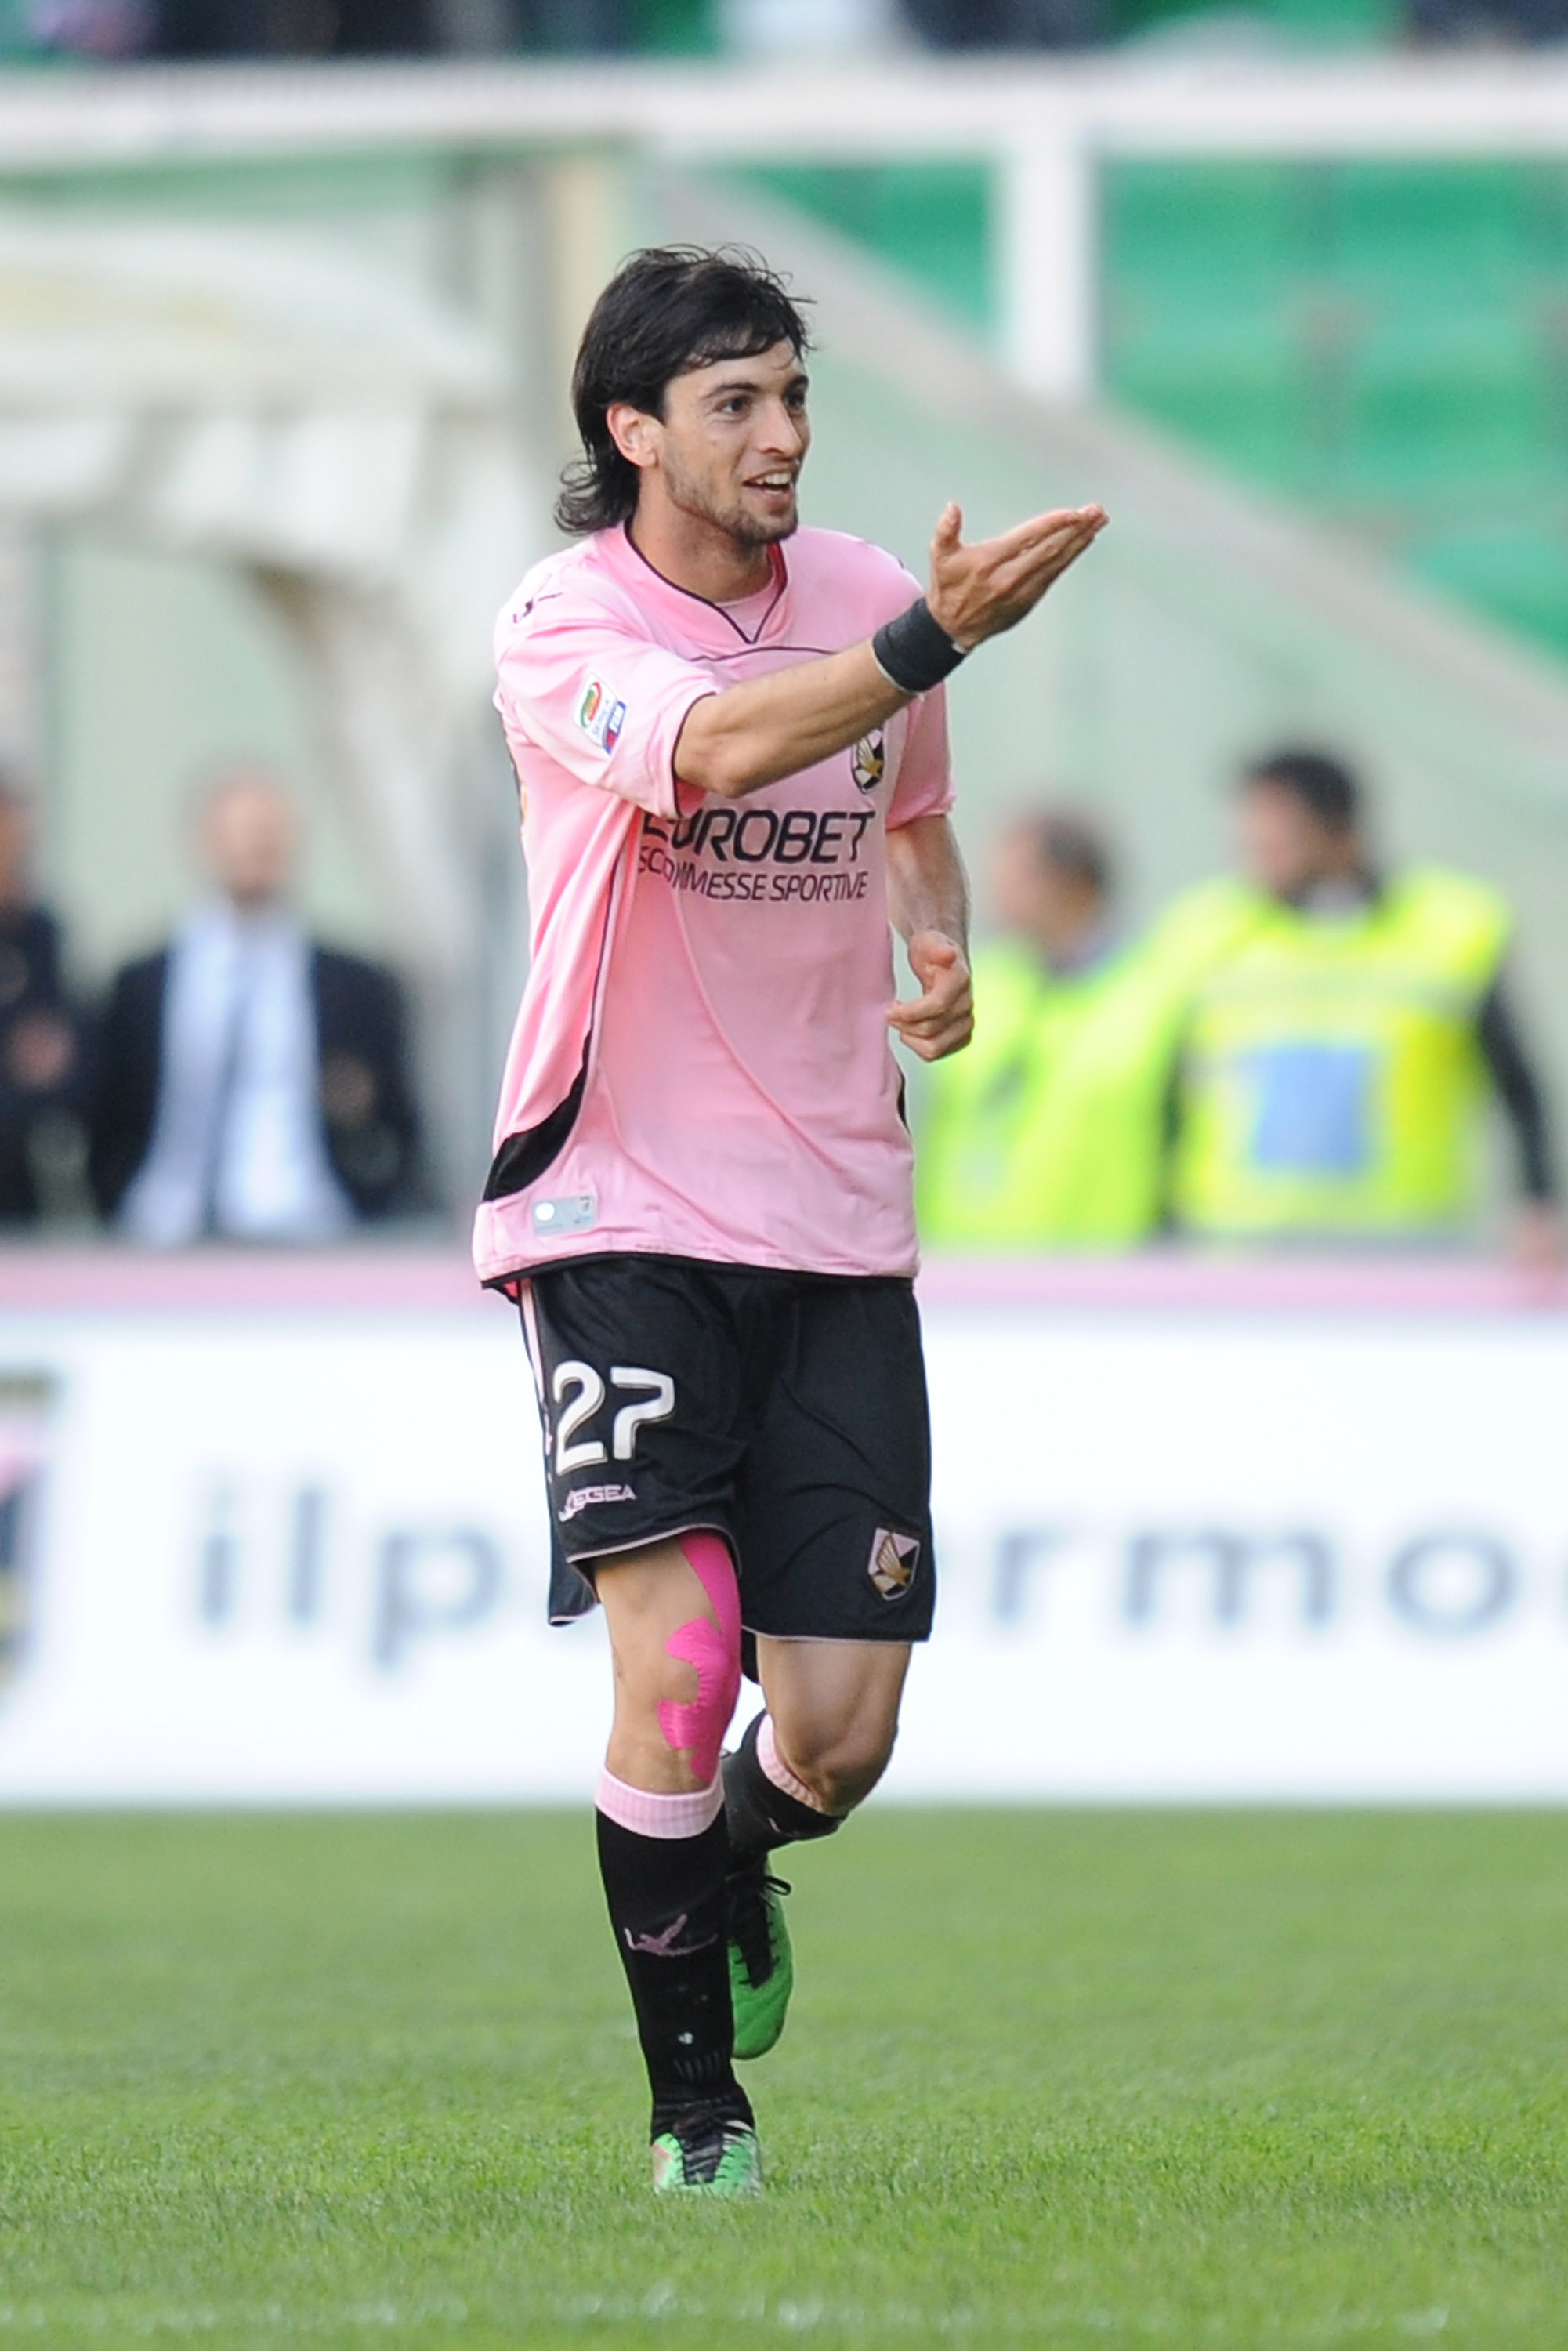 PALERMO, ITALY - NOVEMBER 14:  Javier Pastore of Palermo celebrates after scoring his second goal during the Serie A match between Palermo and Catania at Stadio Renzo Barbera on November 14, 2010 in Palermo, Italy.  (Photo by Tullio M. Puglia/Getty Images